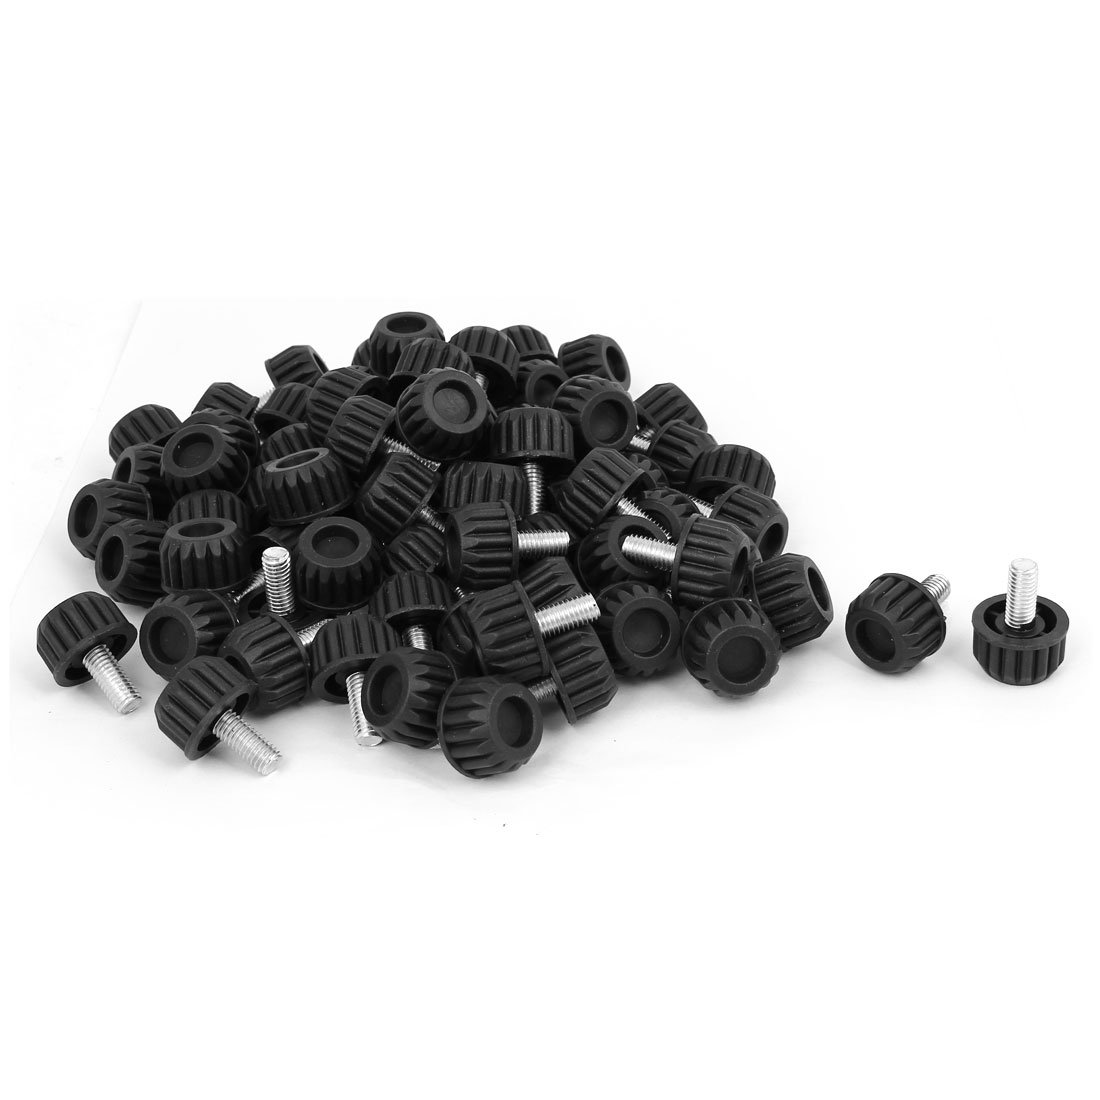 uxcell Home Office M8x18mm Adjustable Furniture Glide Leveling Foot Mat Black 90pcs